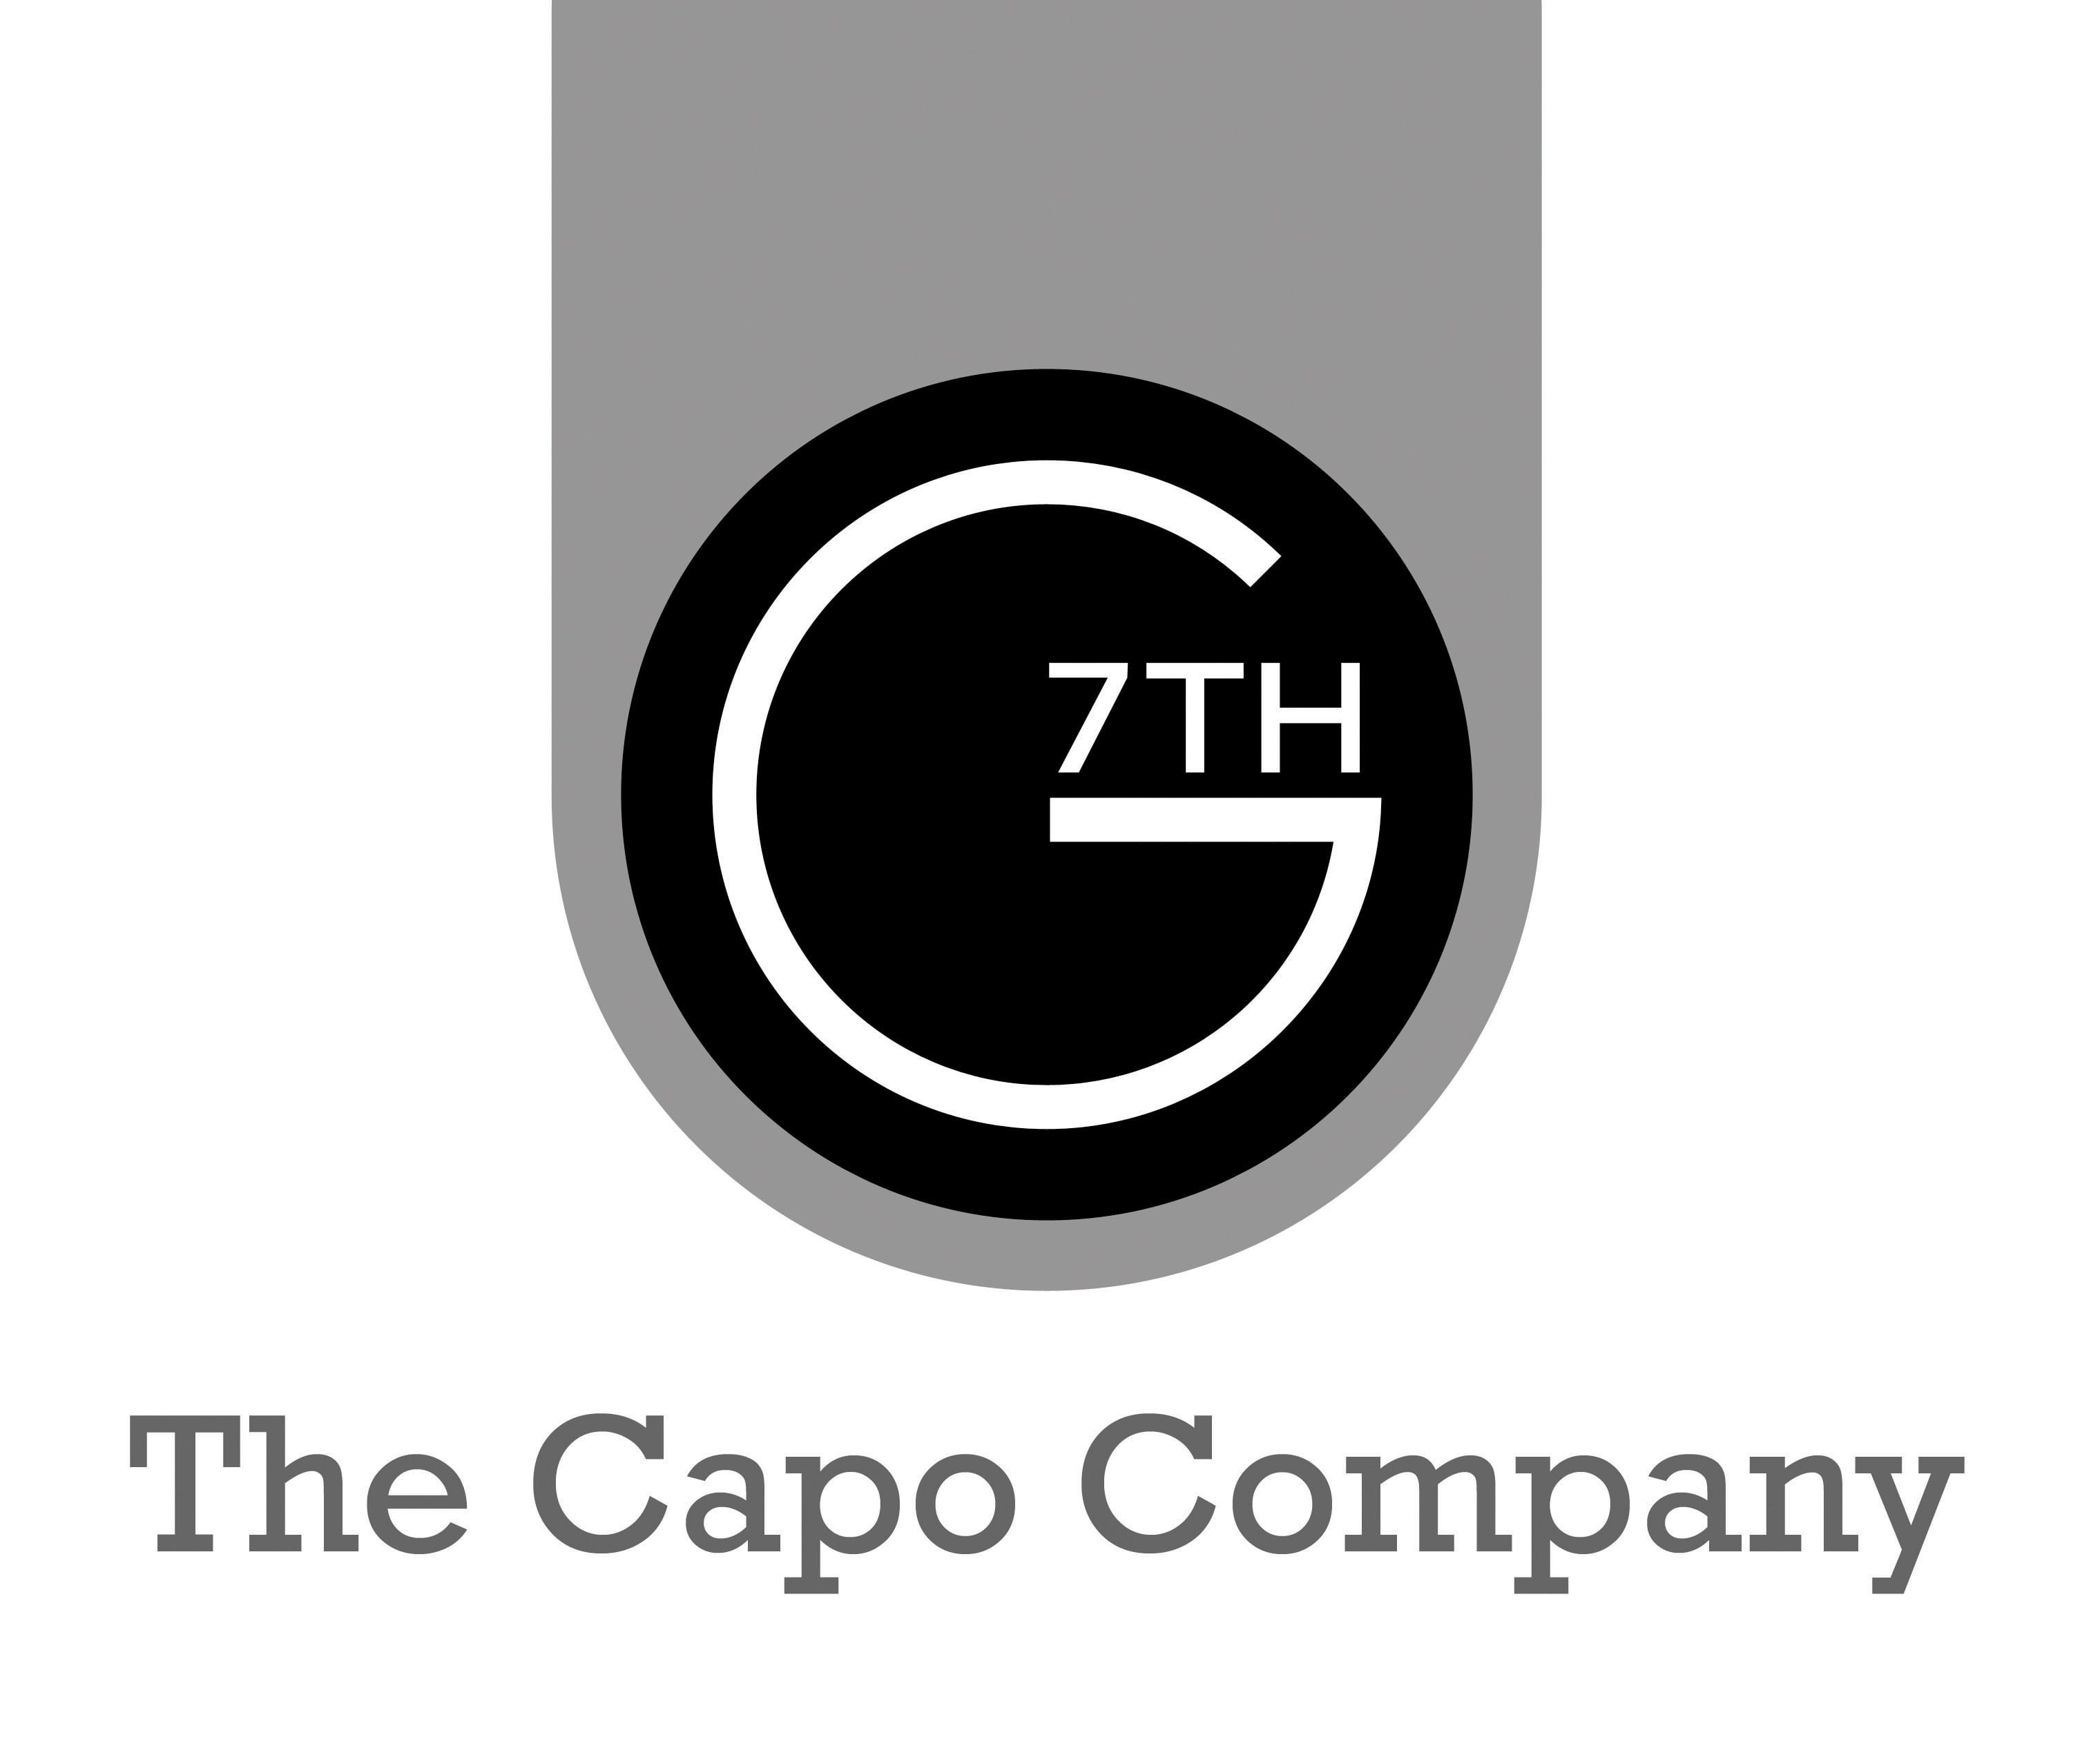 G7th capo Logo